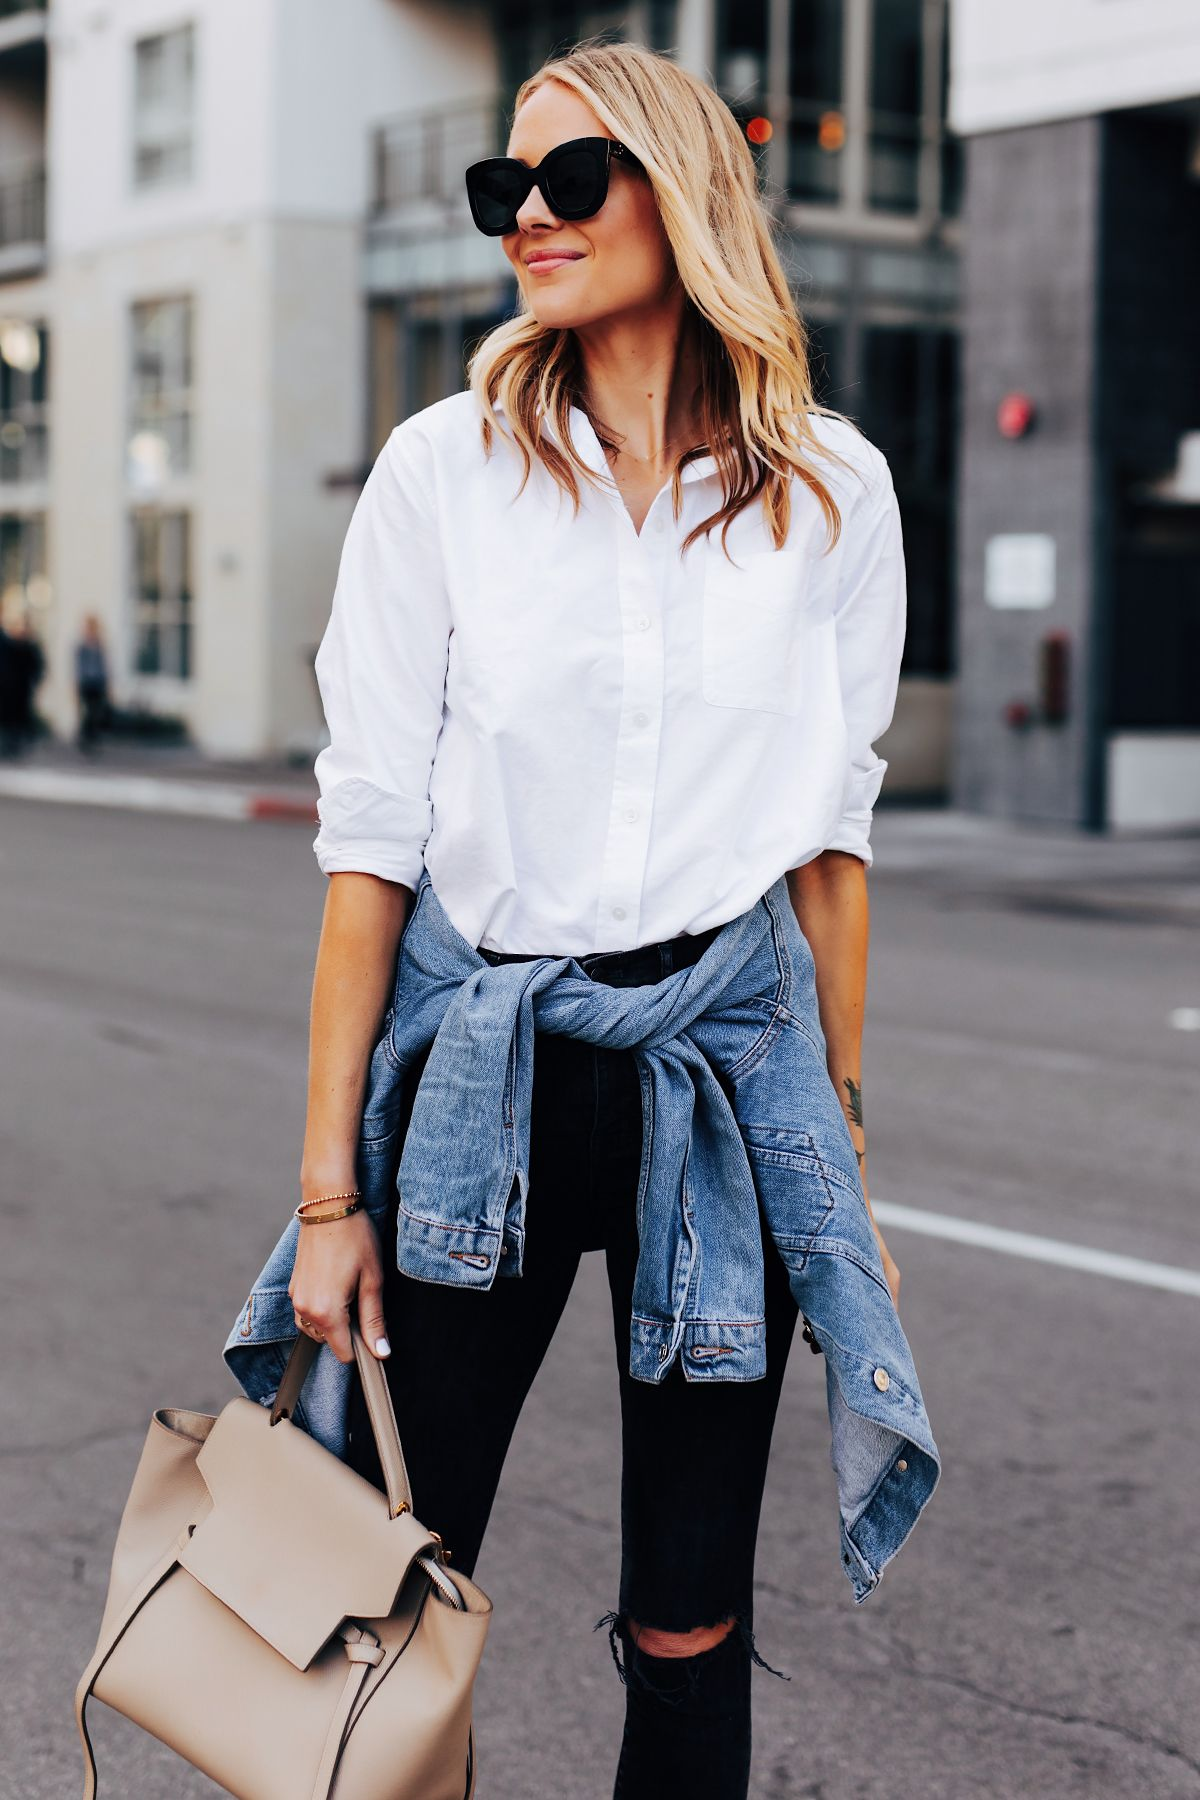 Wearing button down as a dress is a great idea. If you want